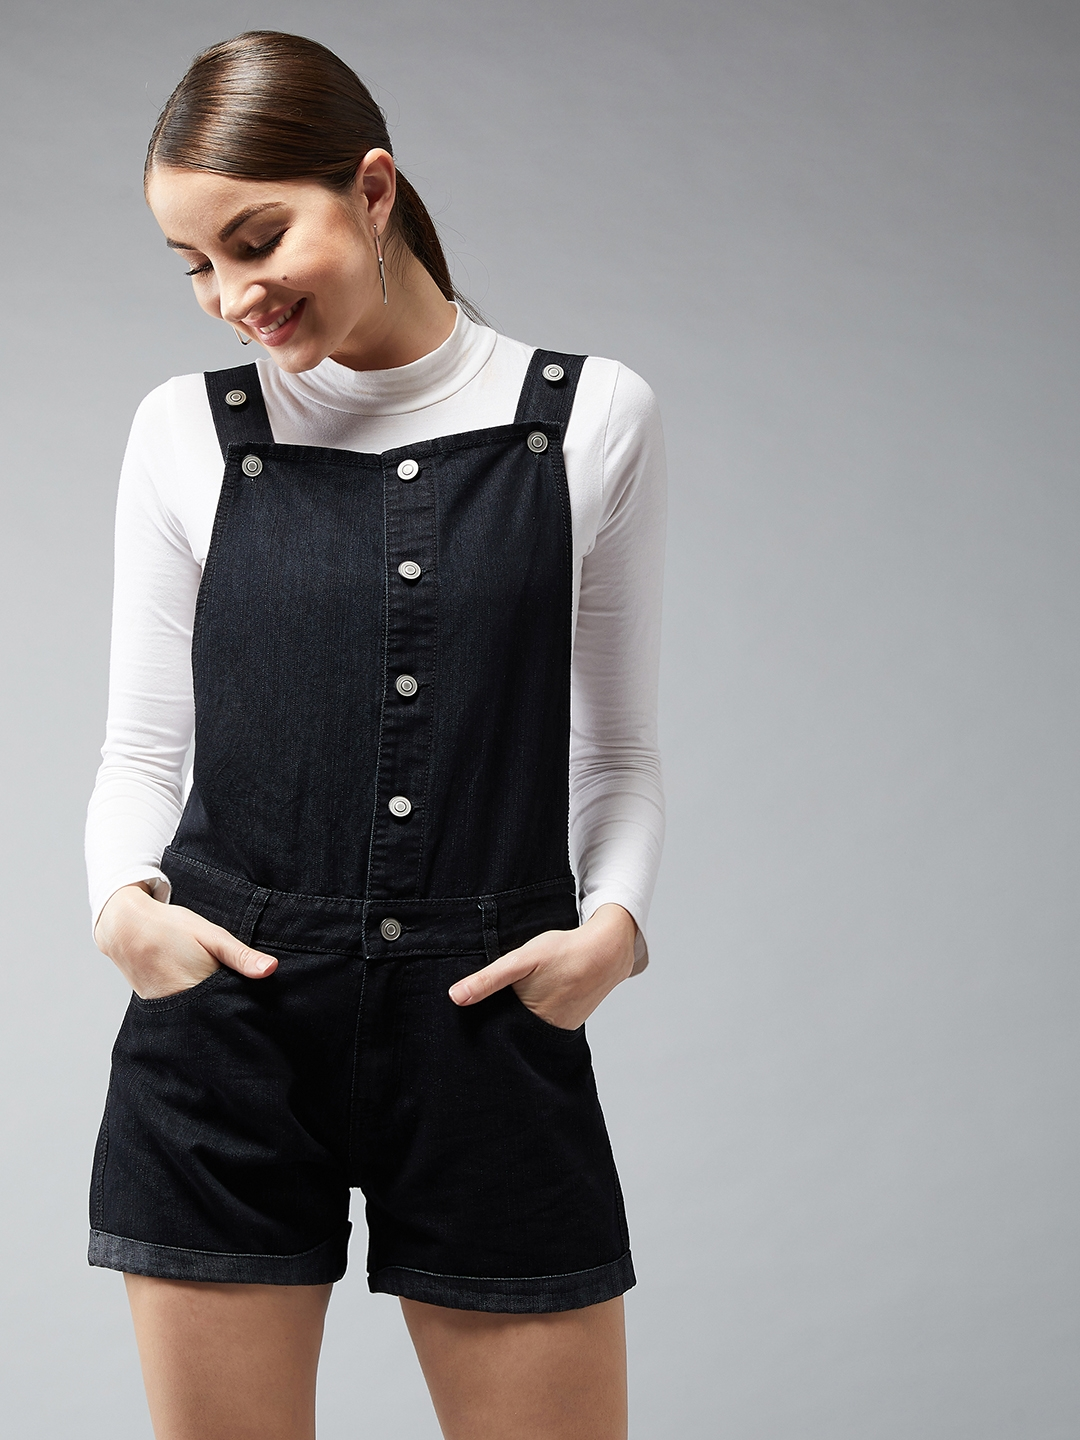 DOLCE CRUDO Women Black Solid Living My Style Denim Dungaree